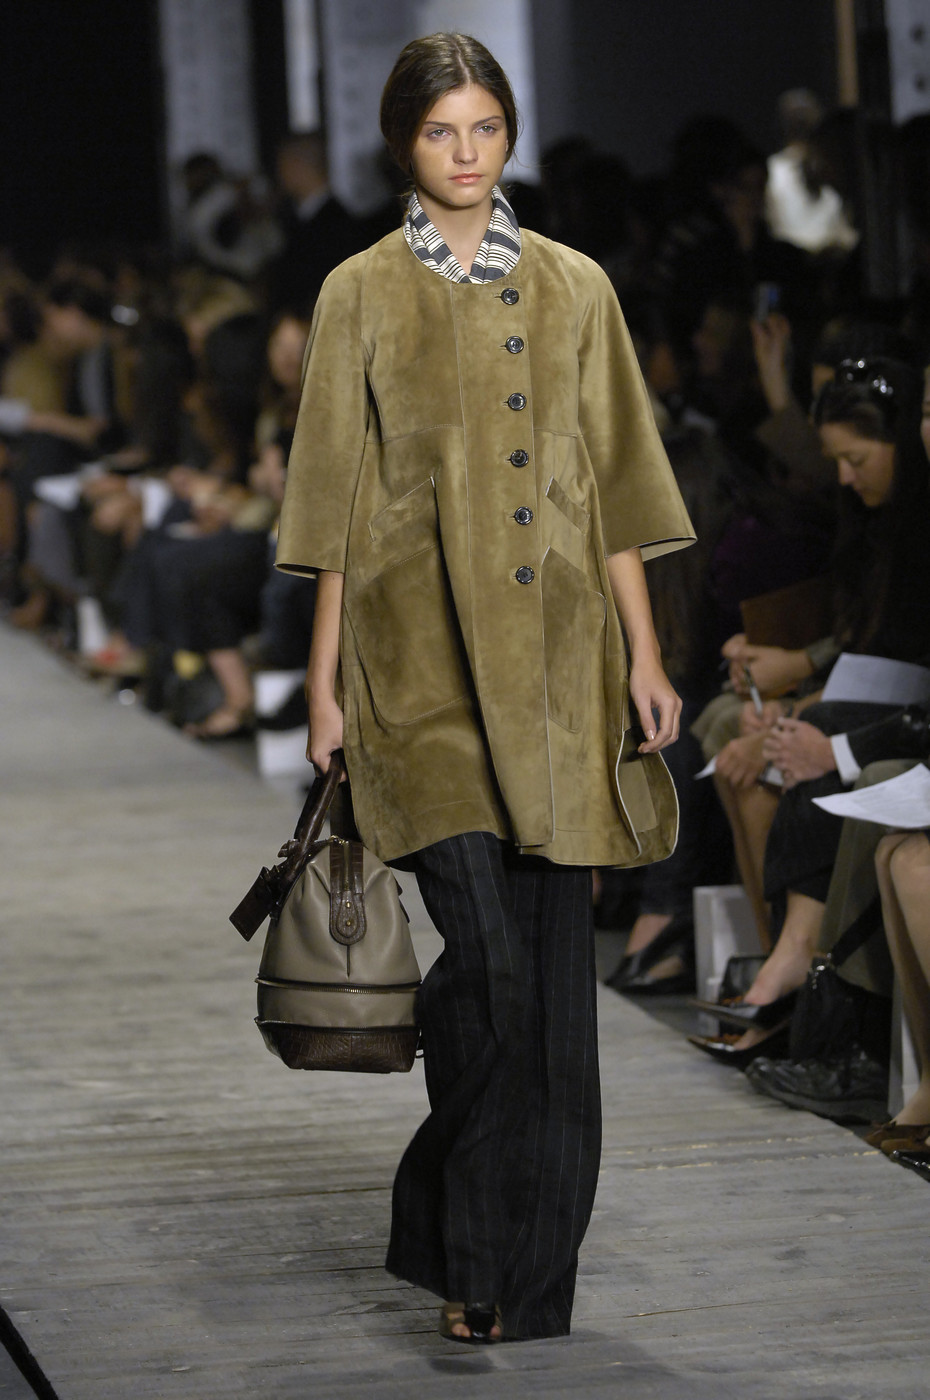 Derek Lam Spring/Summer 2007 collection / timeless chic / investment wardrobe pieces / masculine feminine fashions / sporty chic / via fashioned by love british fashion blog